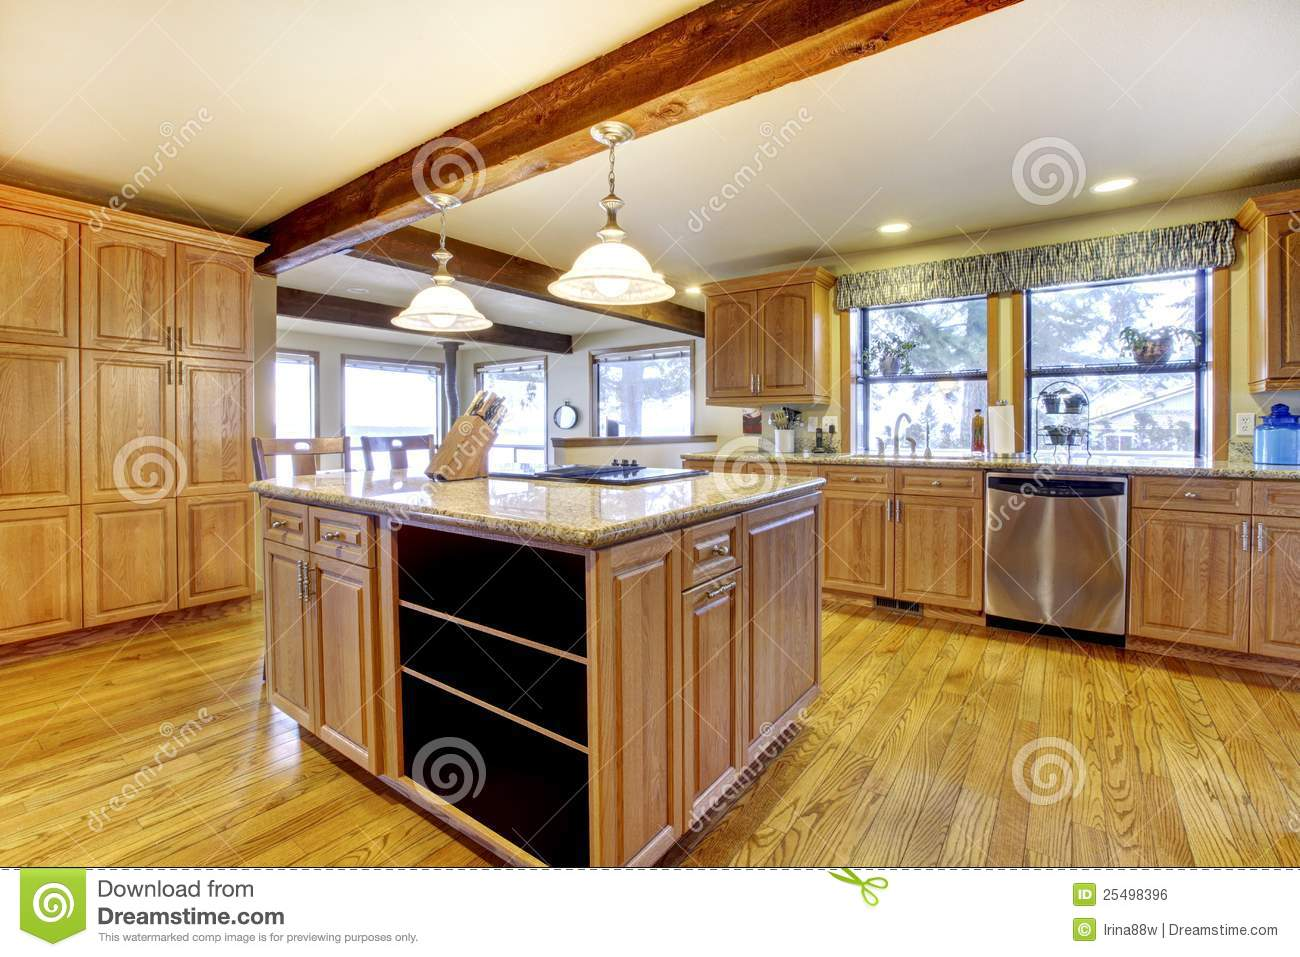 Large wood kitchen with island and wood beam royalty free stock image